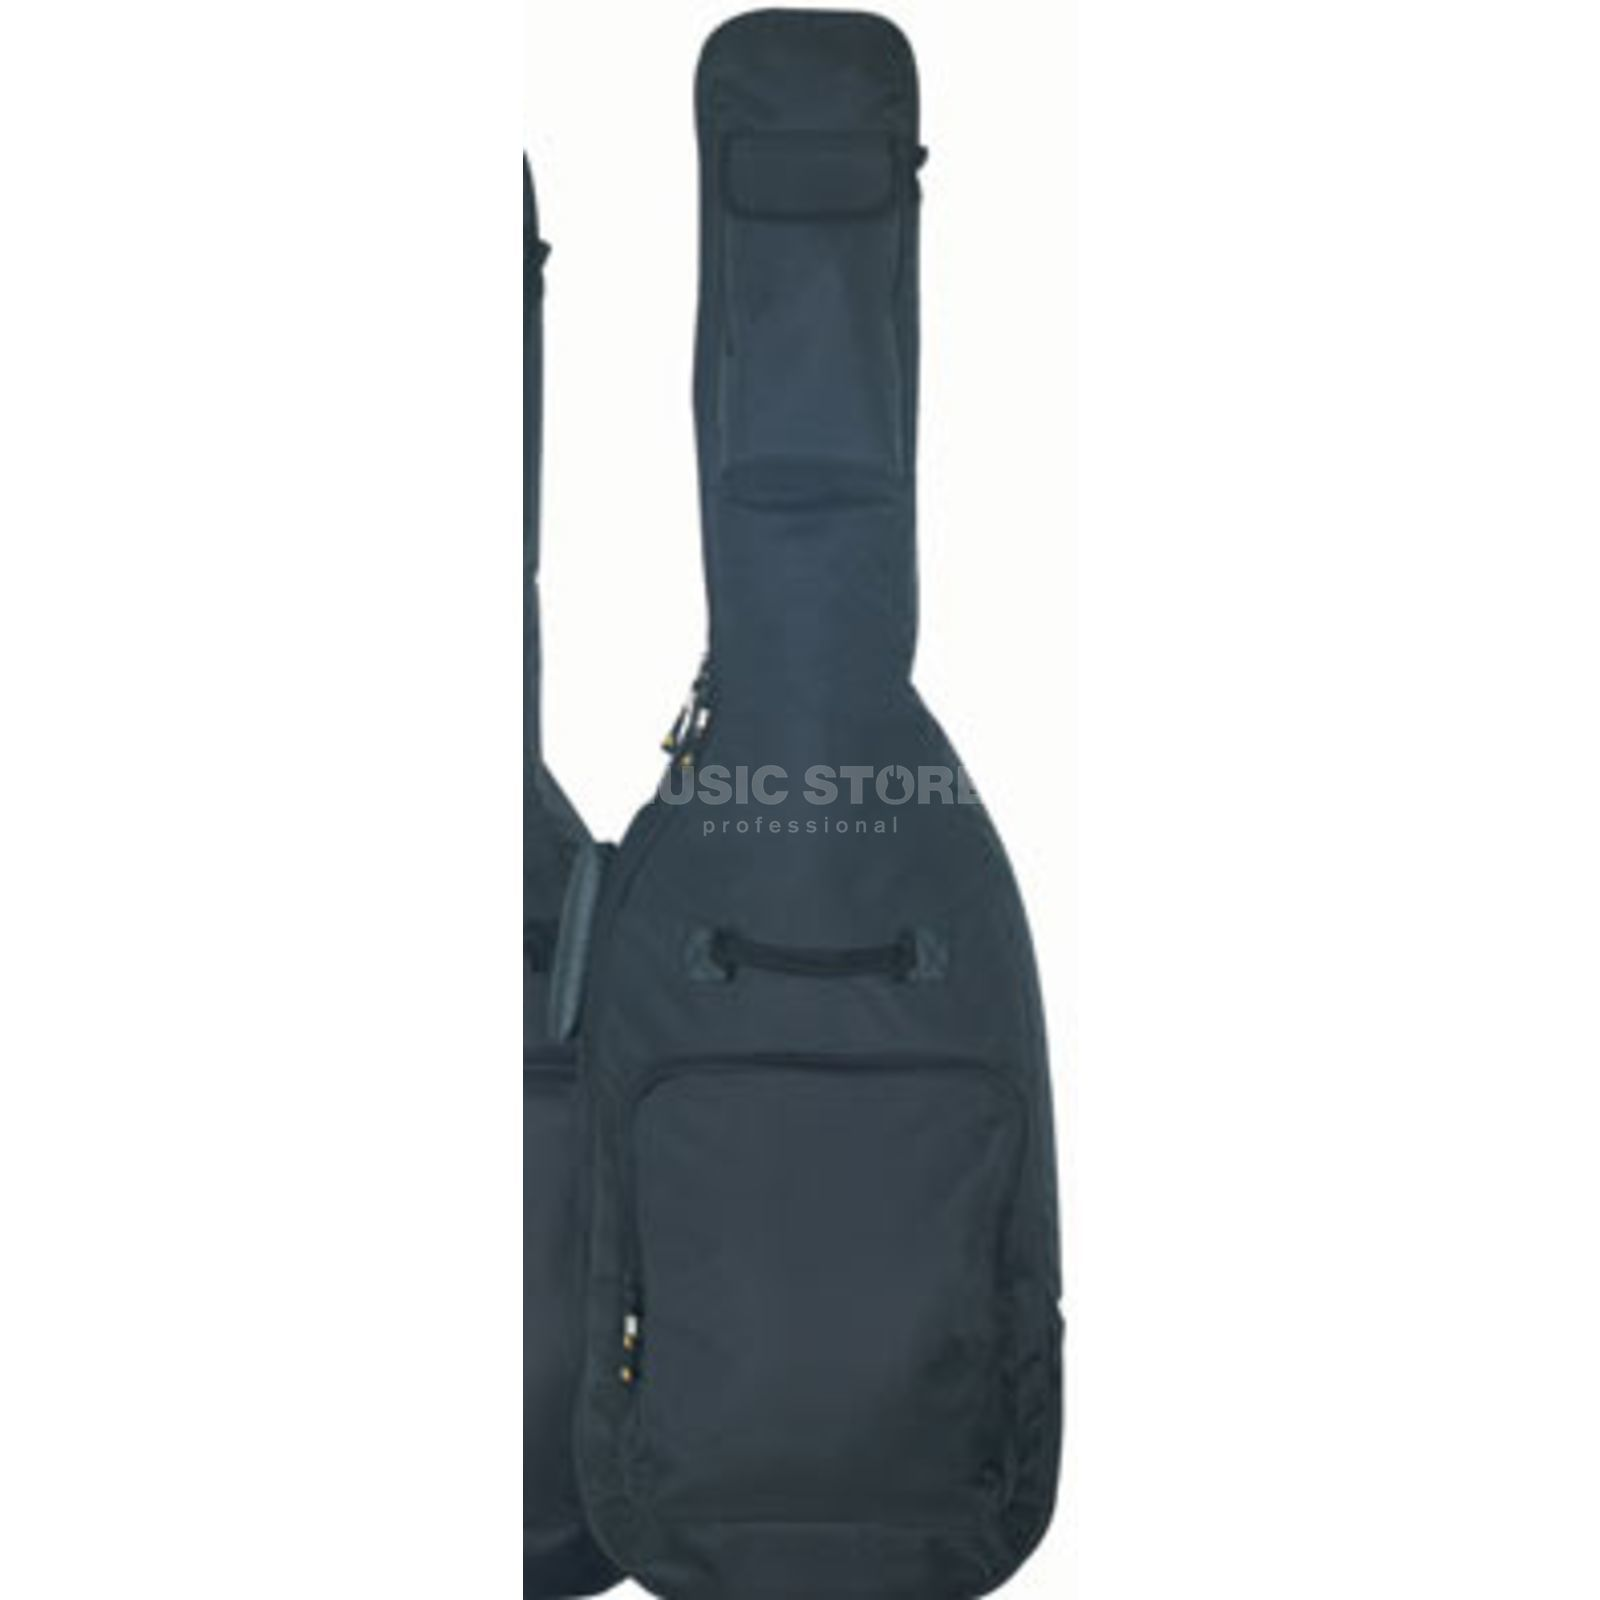 Rockbag Student Line Bass Guitar Gig bag, Nylon, Black Produktbillede